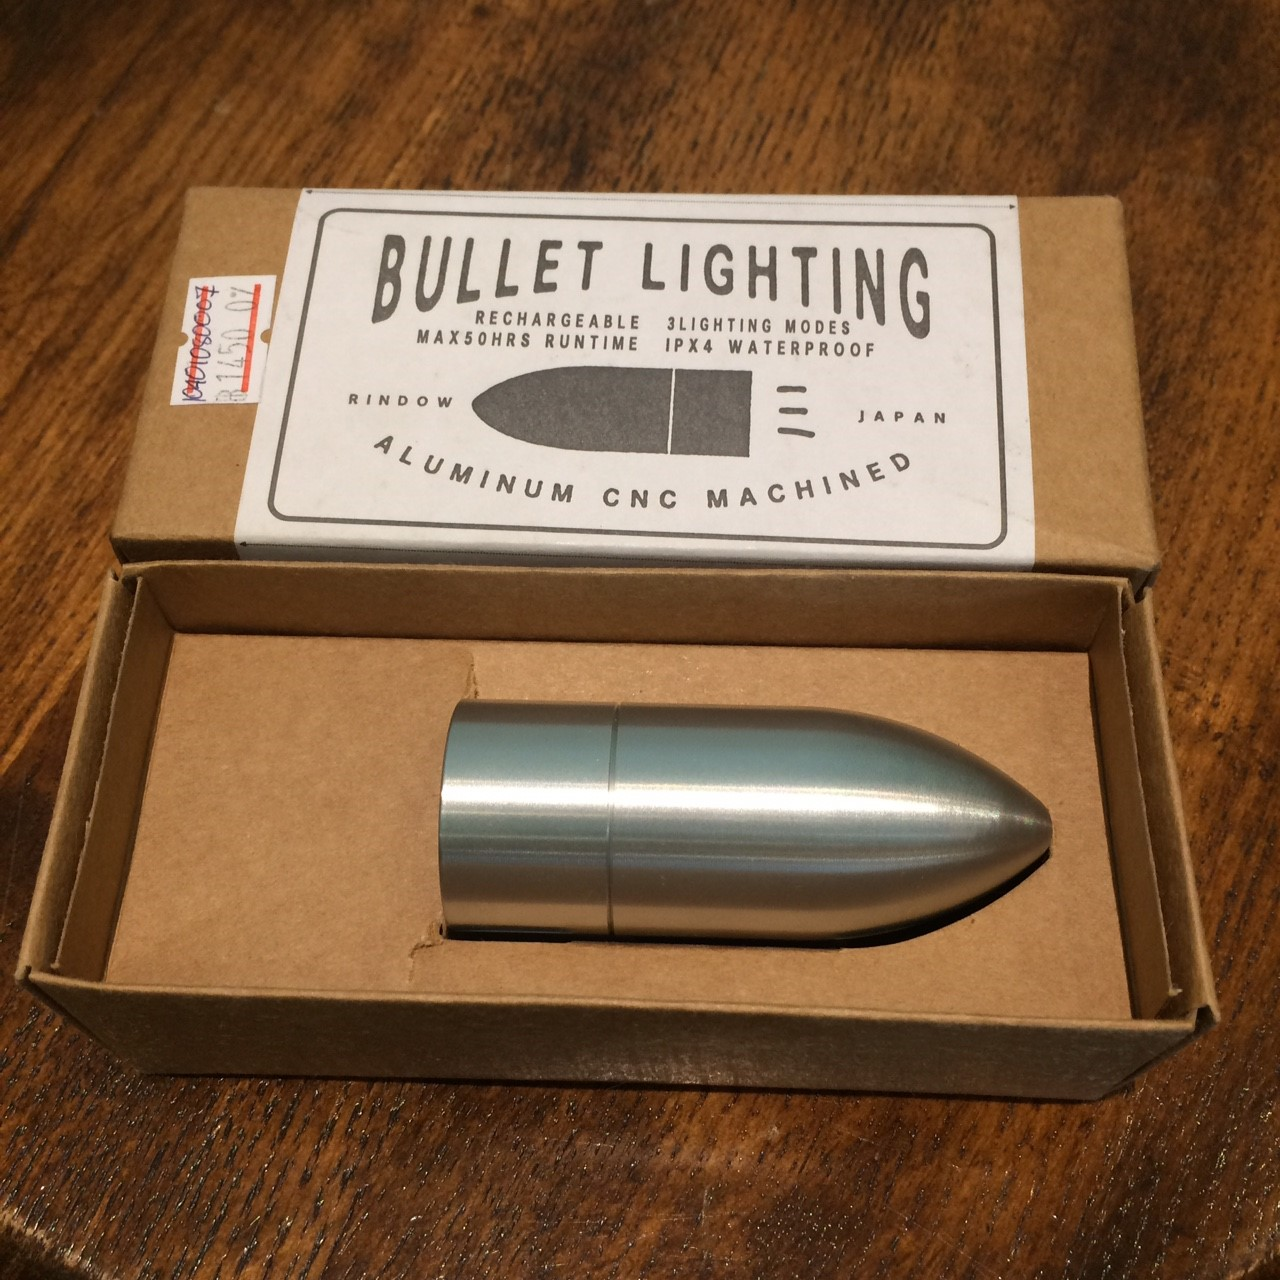 ฺ๊BULLET LIGHTING